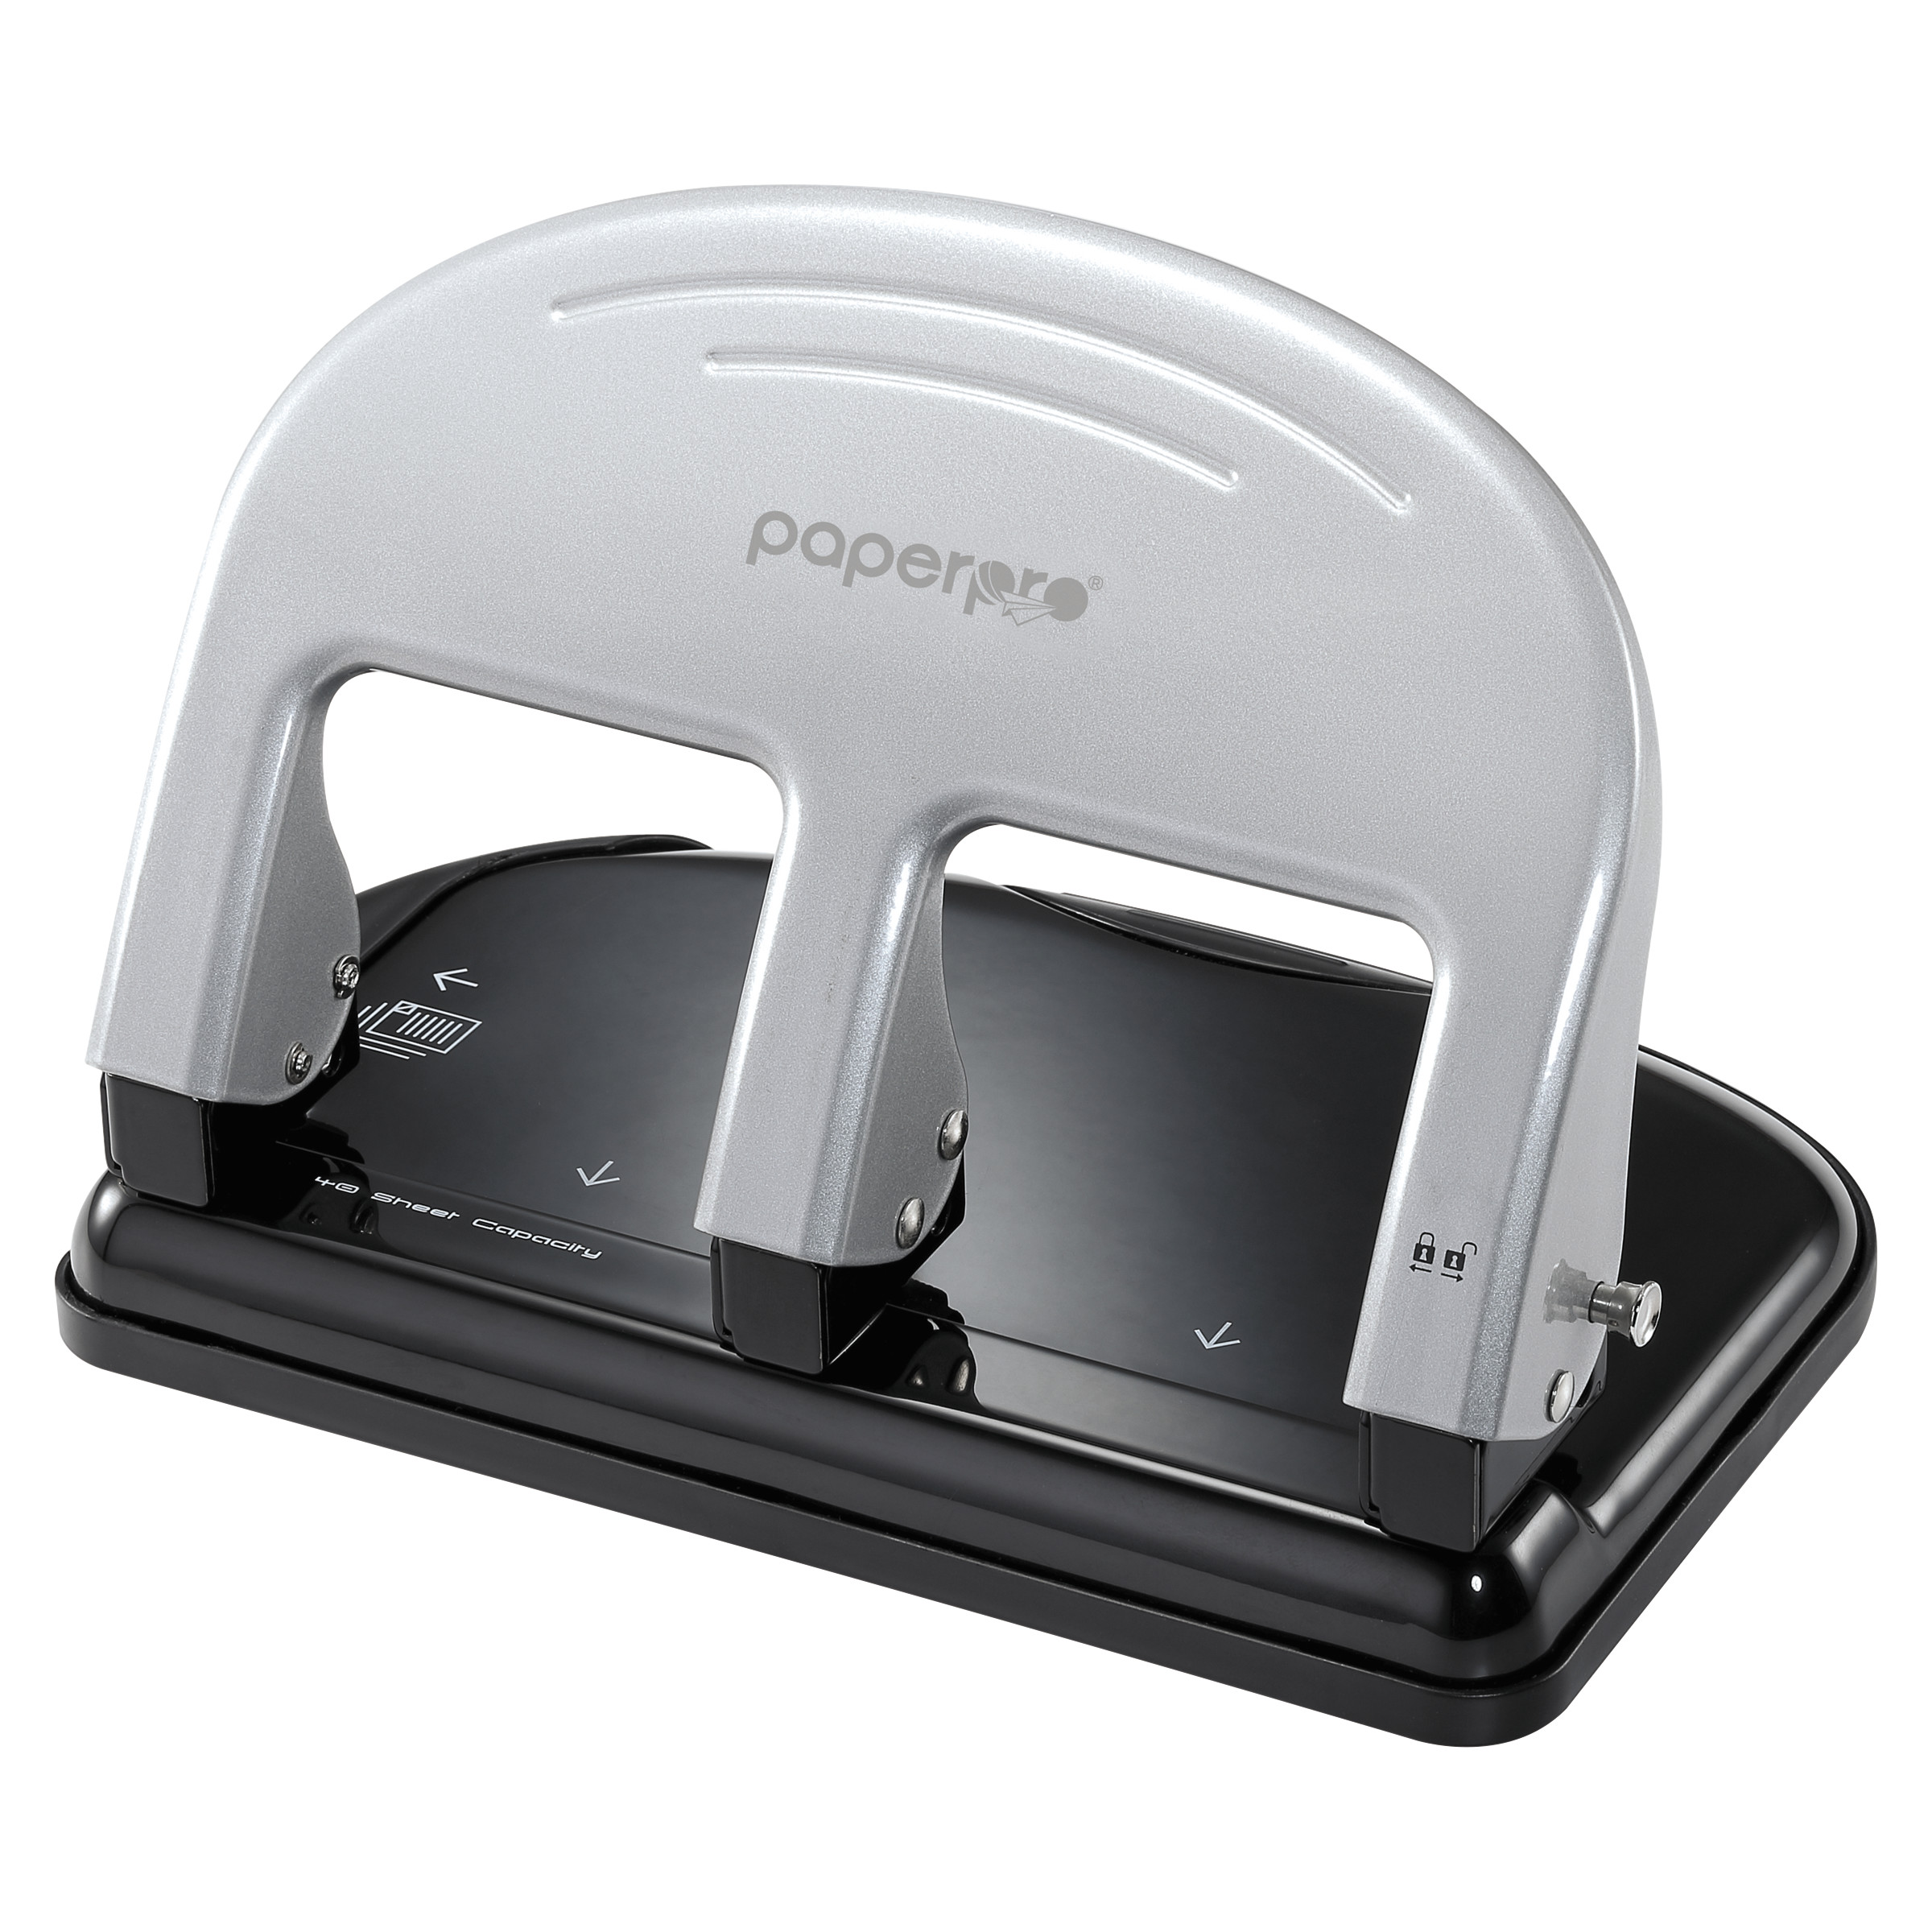 PaperPro inPRESS Three-Hole Punch, 40-Sheet Capacity, Black/Silver